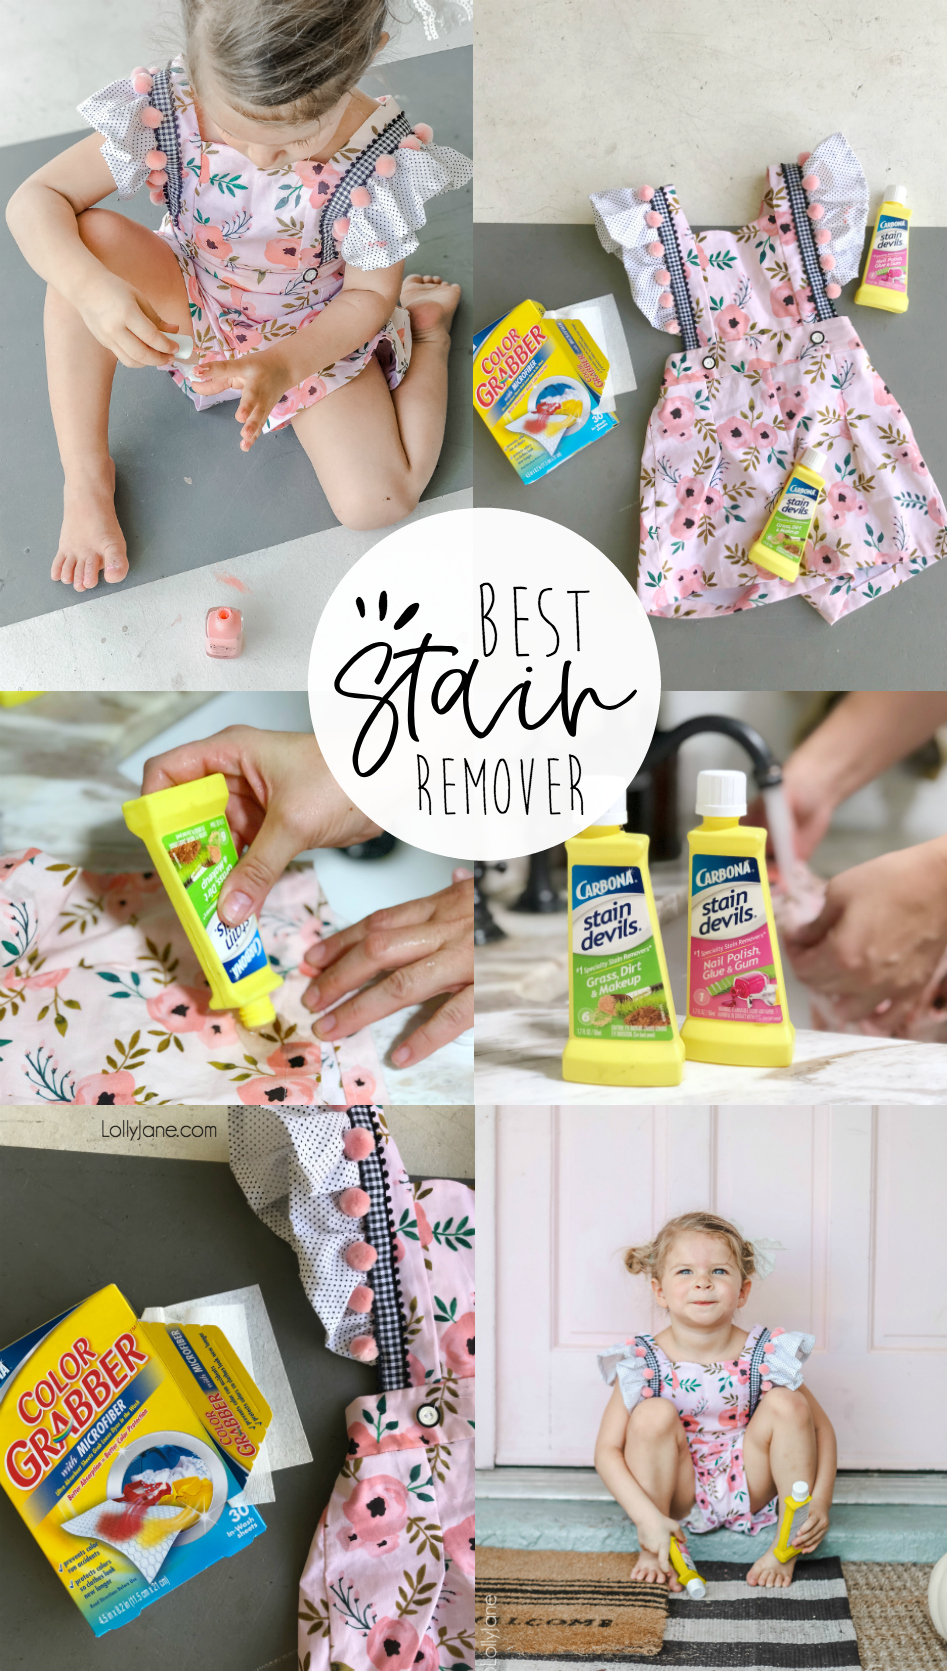 Wowza! I can hardly believe that nail polish (yes, nail polish!) came out of this outfit! Best ever stain remover revealed, check it out!